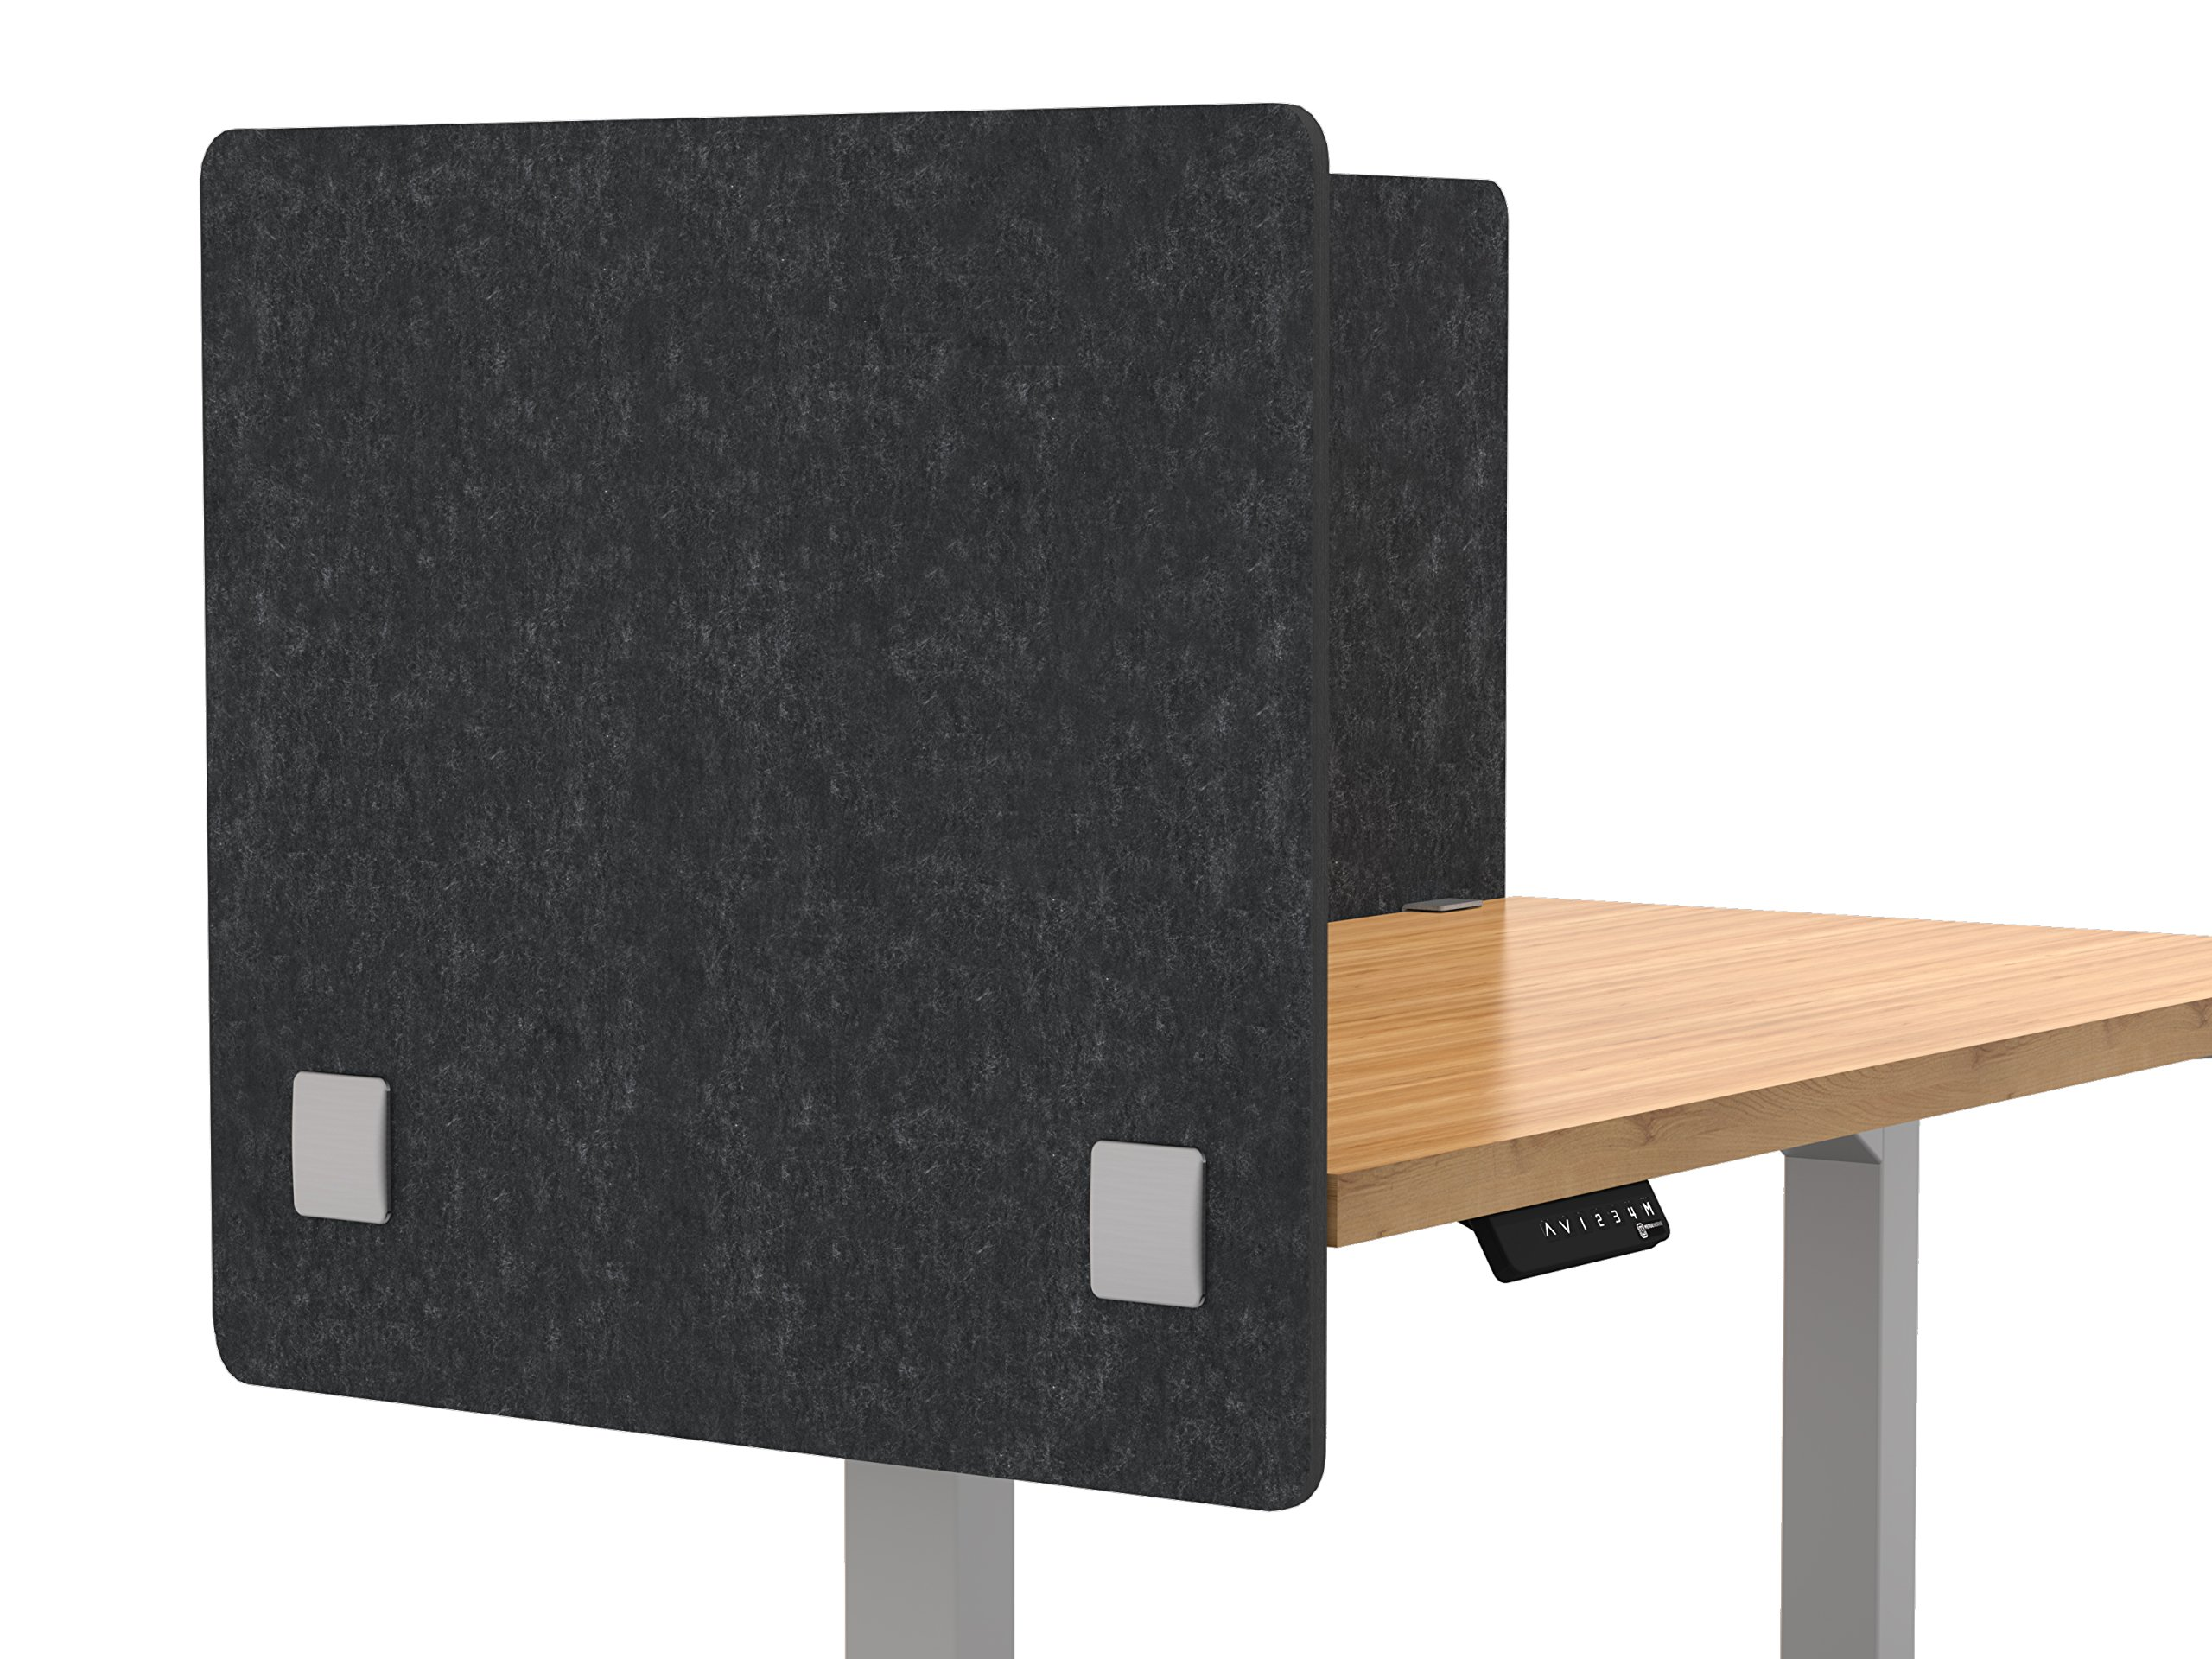 """VaRoom Acoustic Partition, Sound Absorbing Desk Divider – 24"""" W x 24""""H Privacy Desk Mounted Cubicle Panel, Charcoal Grey"""